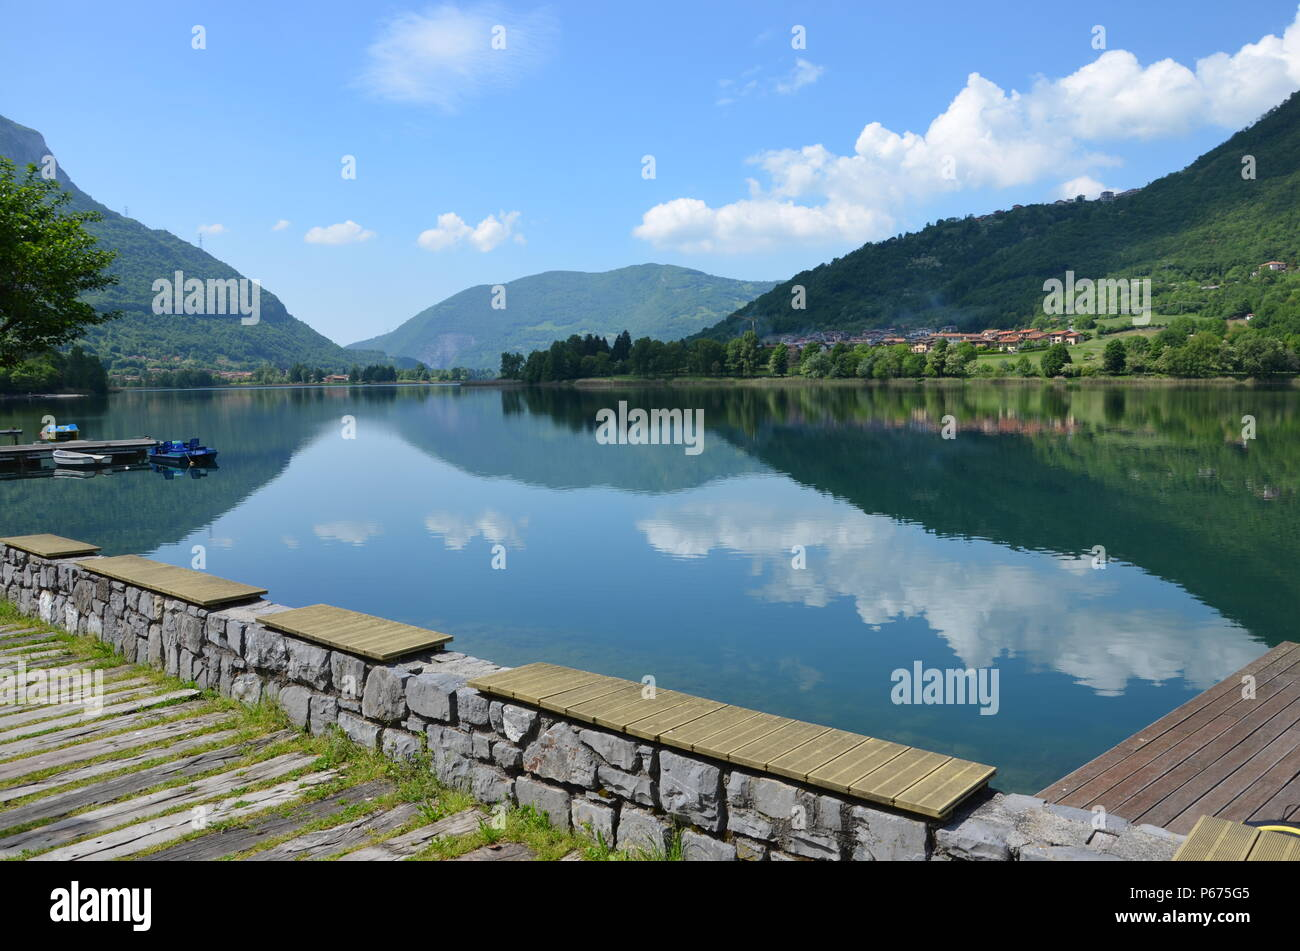 View towards Lago d'Iseo in Lombardy, Italy, panorama, Lovere, water surface, Brescia, Bergamo, upper Italian, hiking, biking, hiking trails - Stock Image